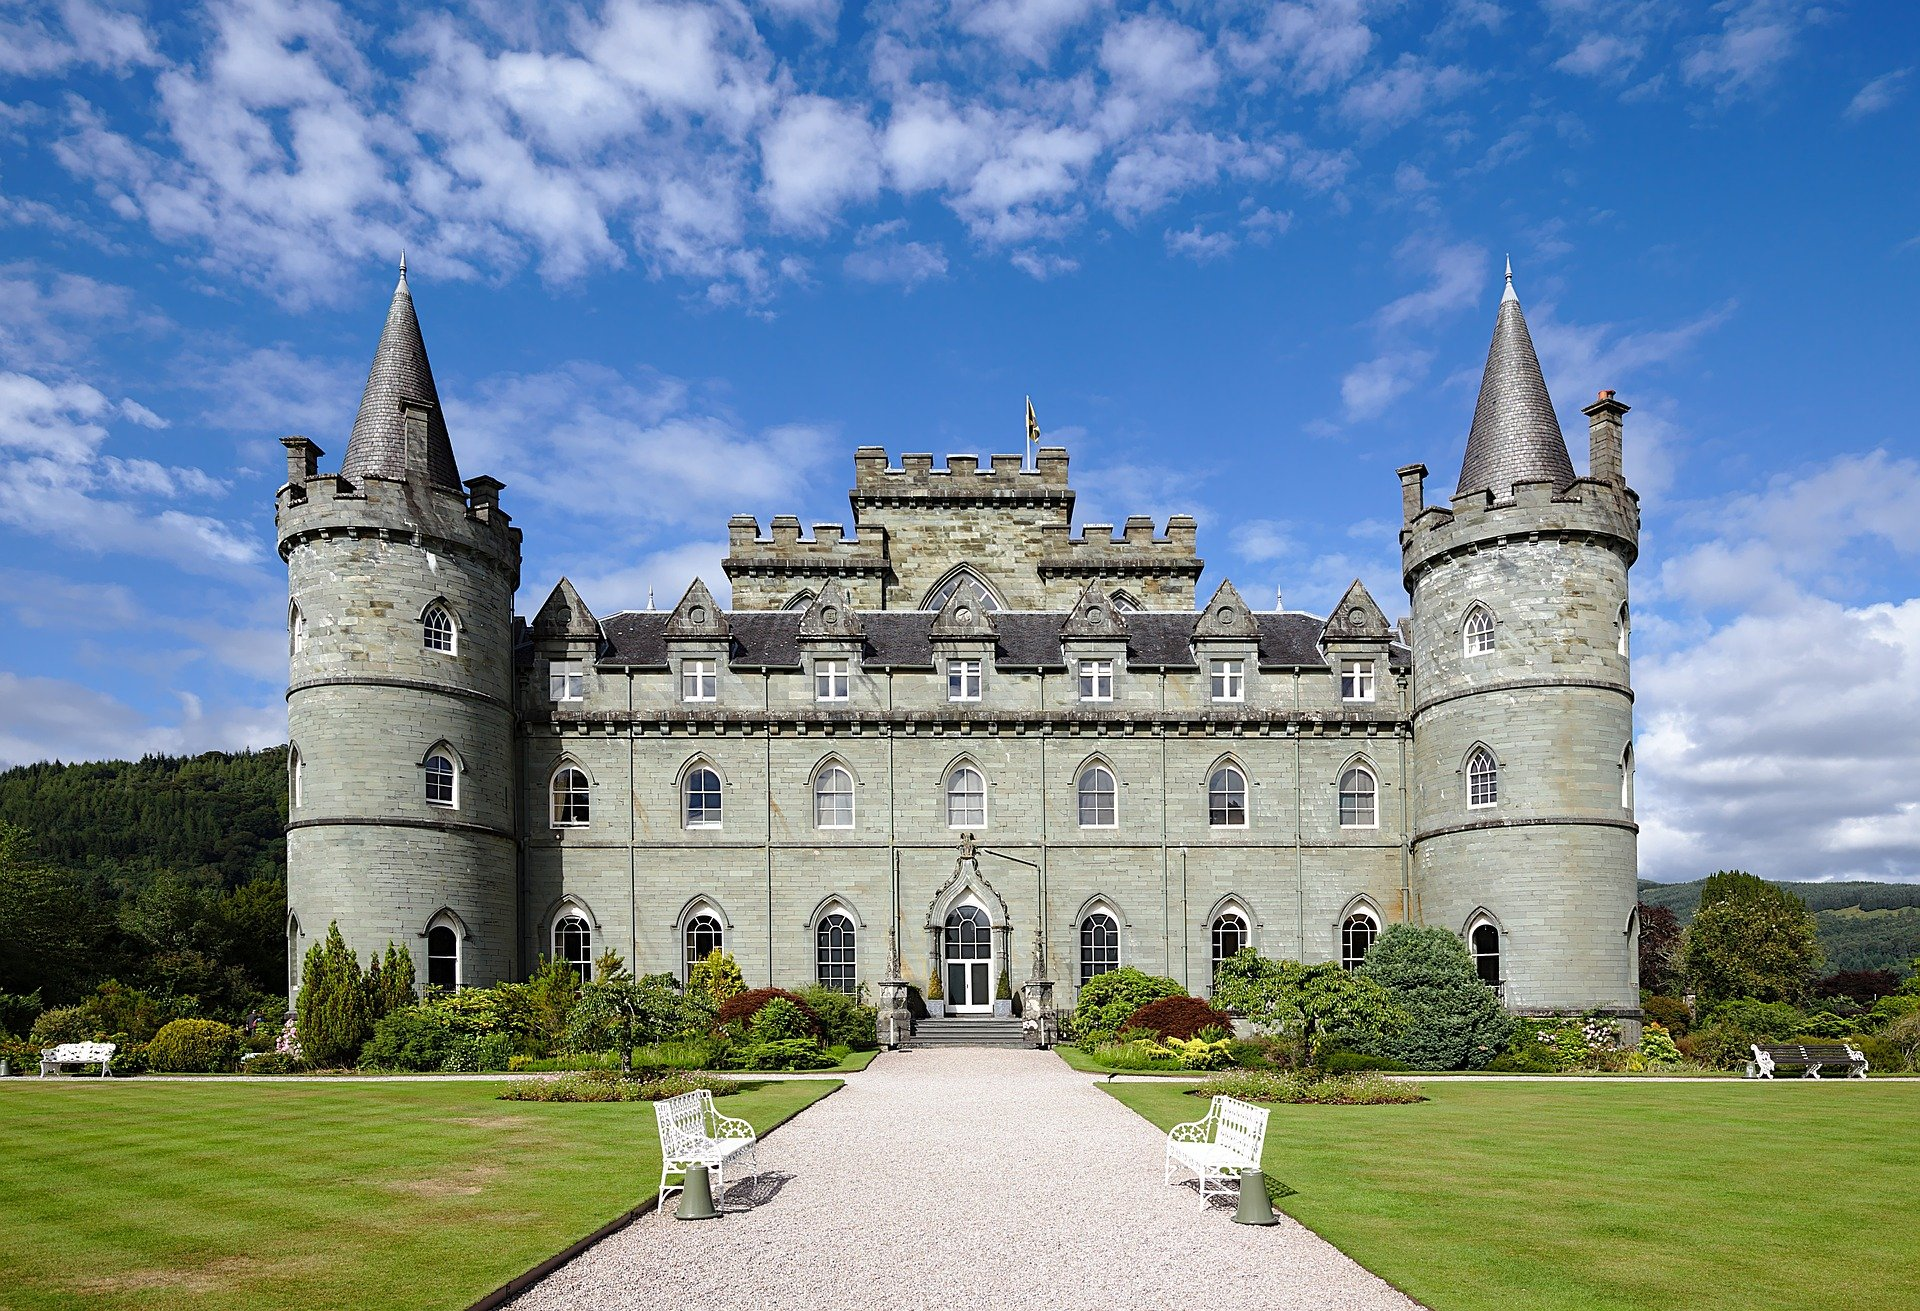 An image of a castle in Scotland   Photo: Pixabay